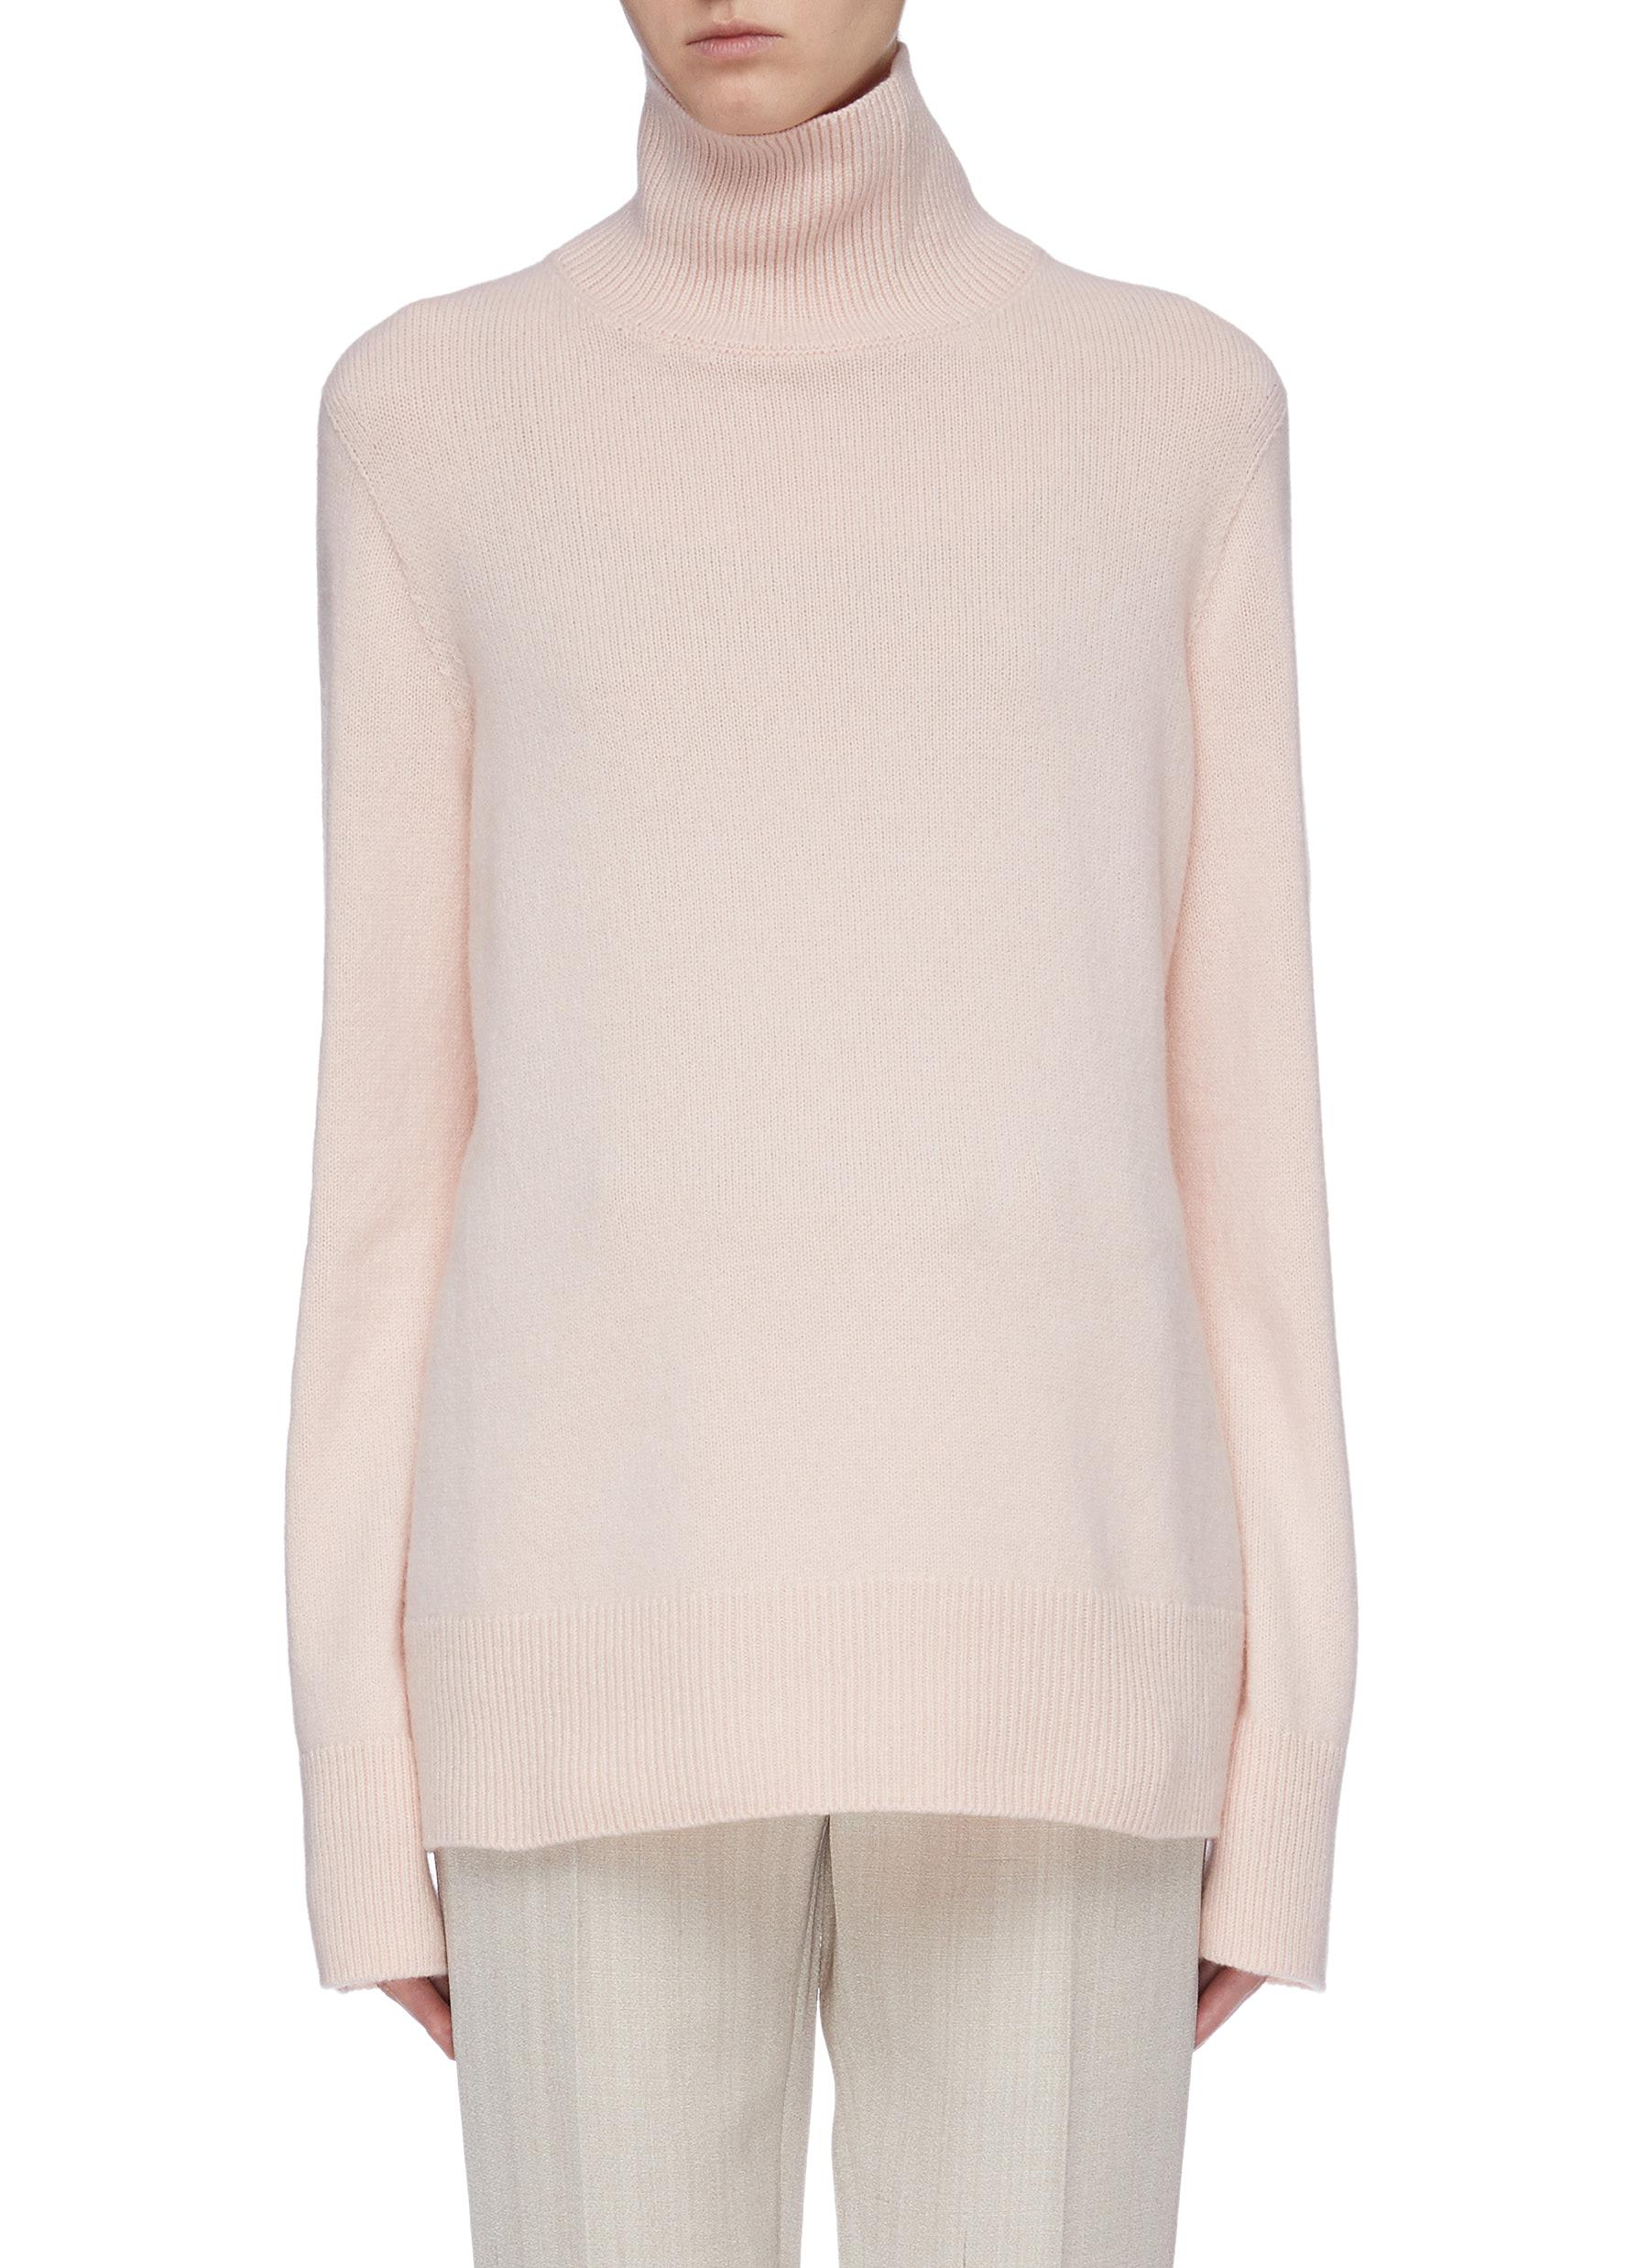 Milina wool-cashmere turtleneck sweater by The Row